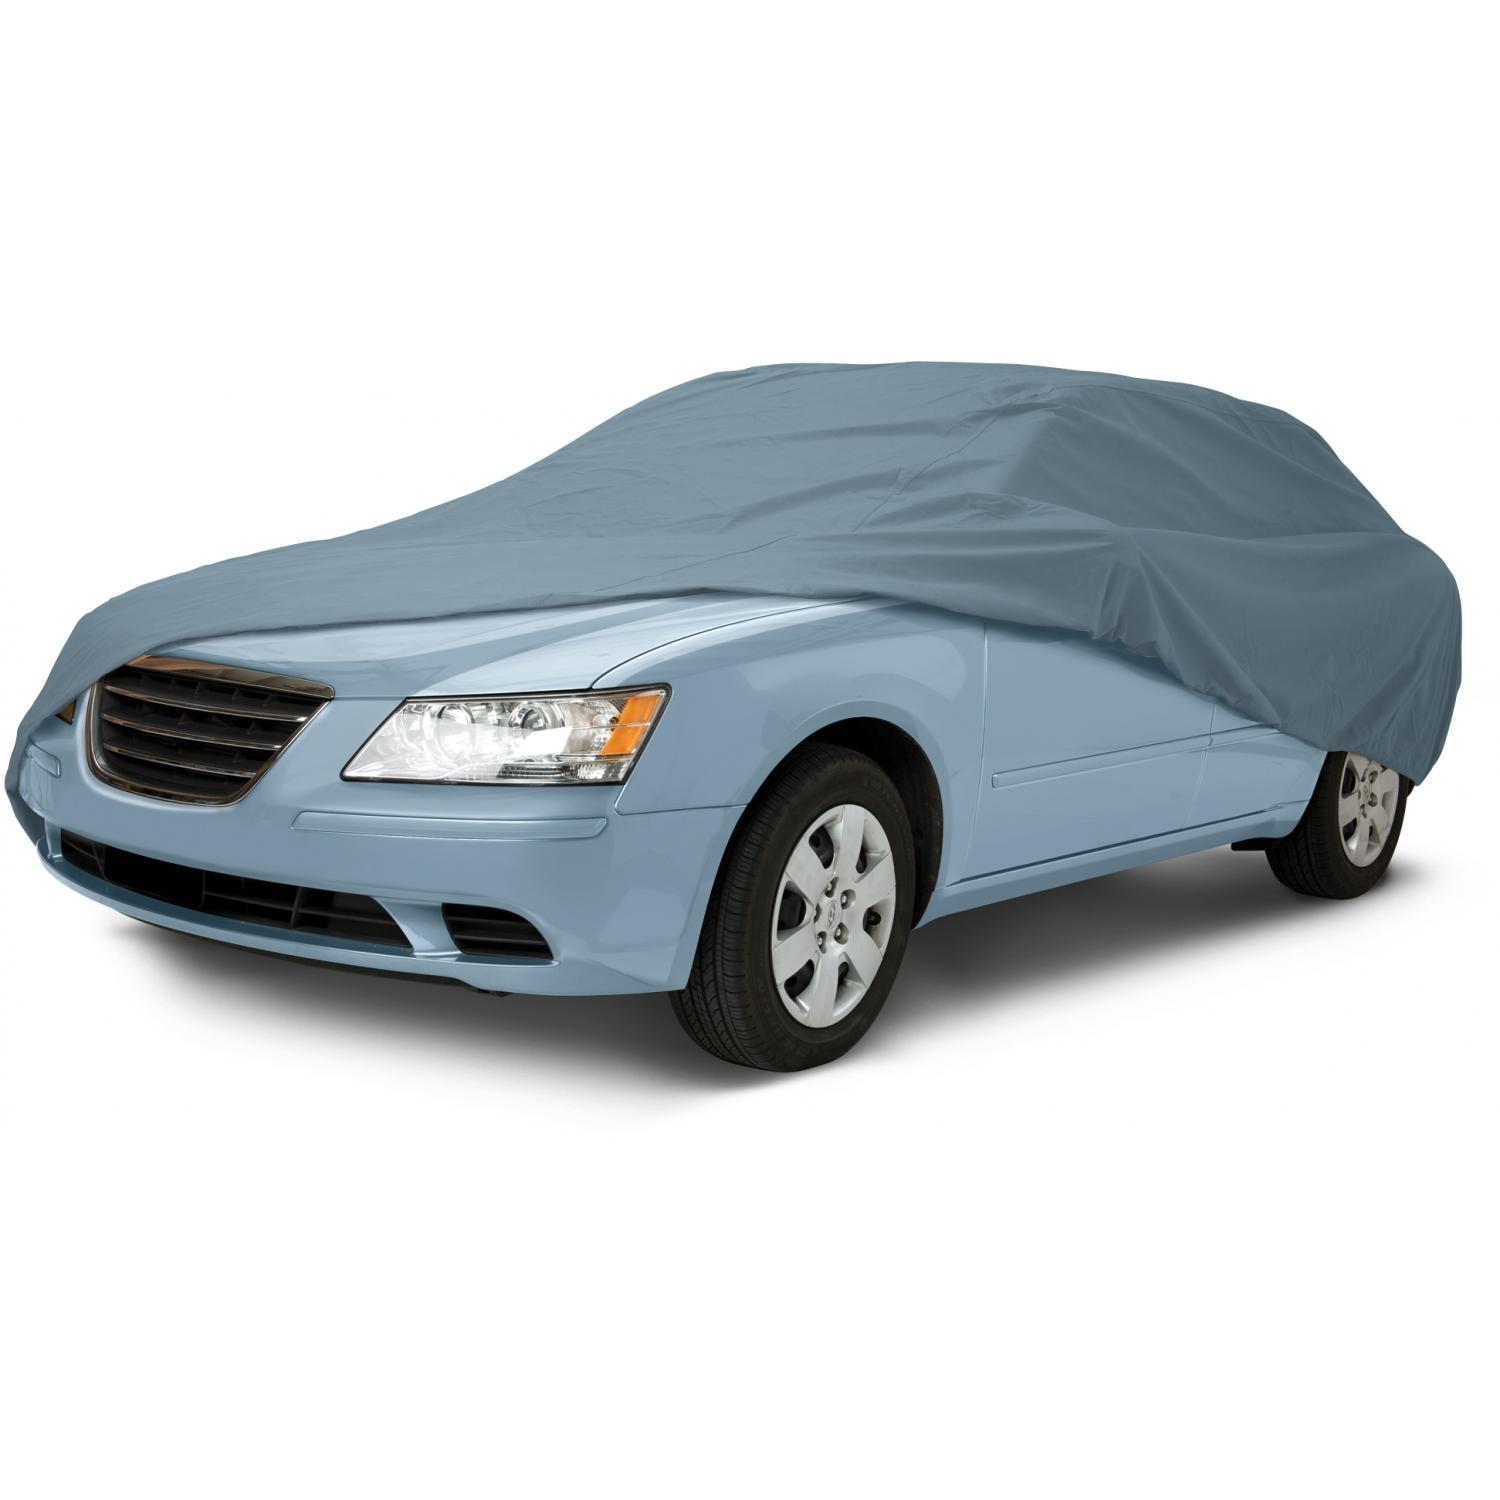 Classic Accessories PolyPRO 1 Vehicle Cover - Compact Sedan